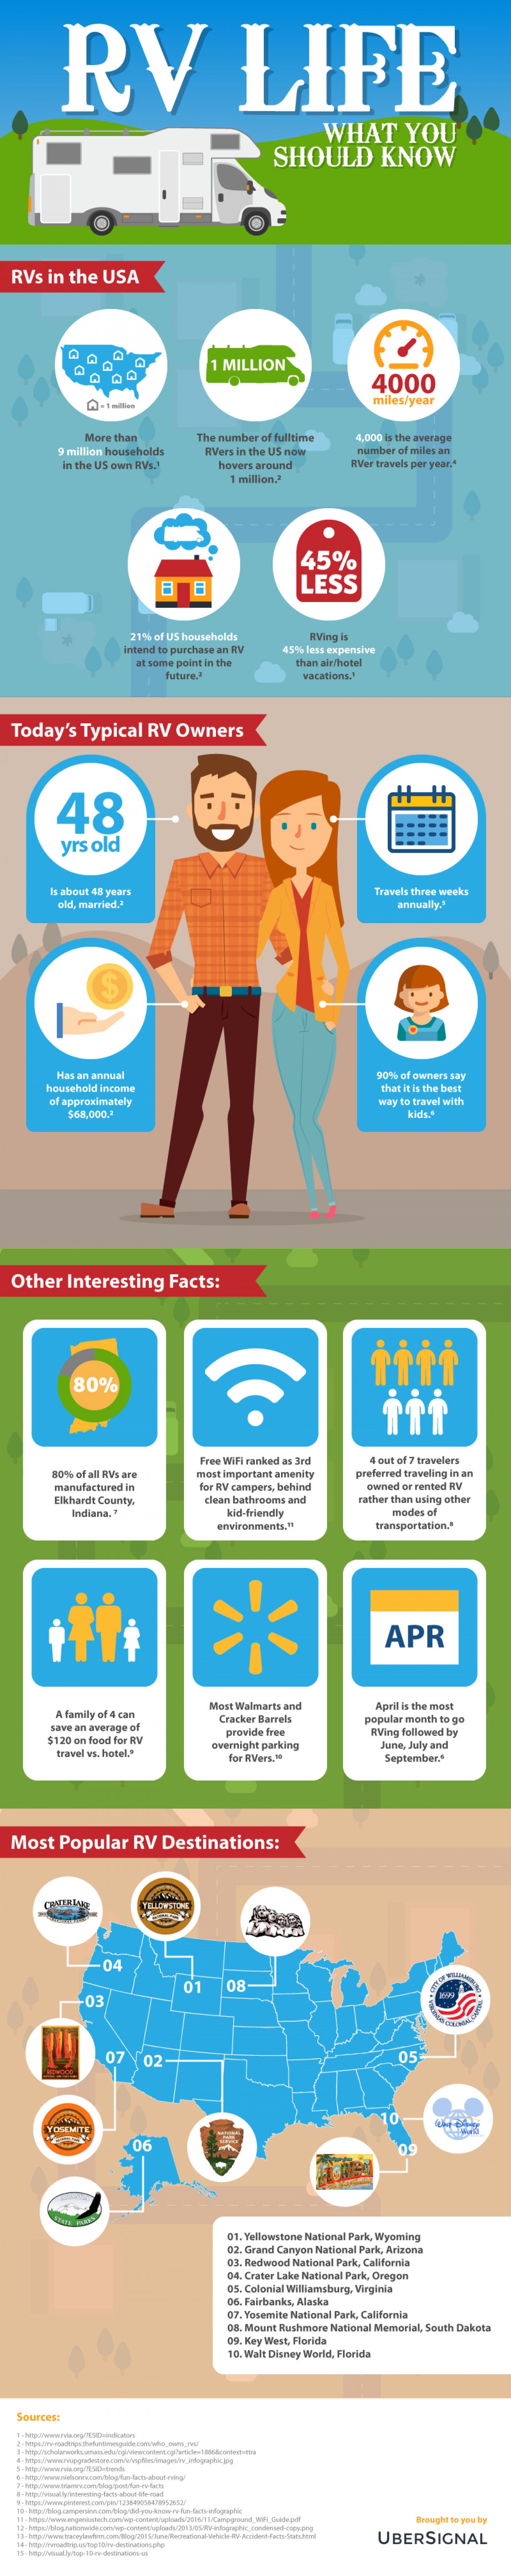 RV Life: What You Should Know Infographic